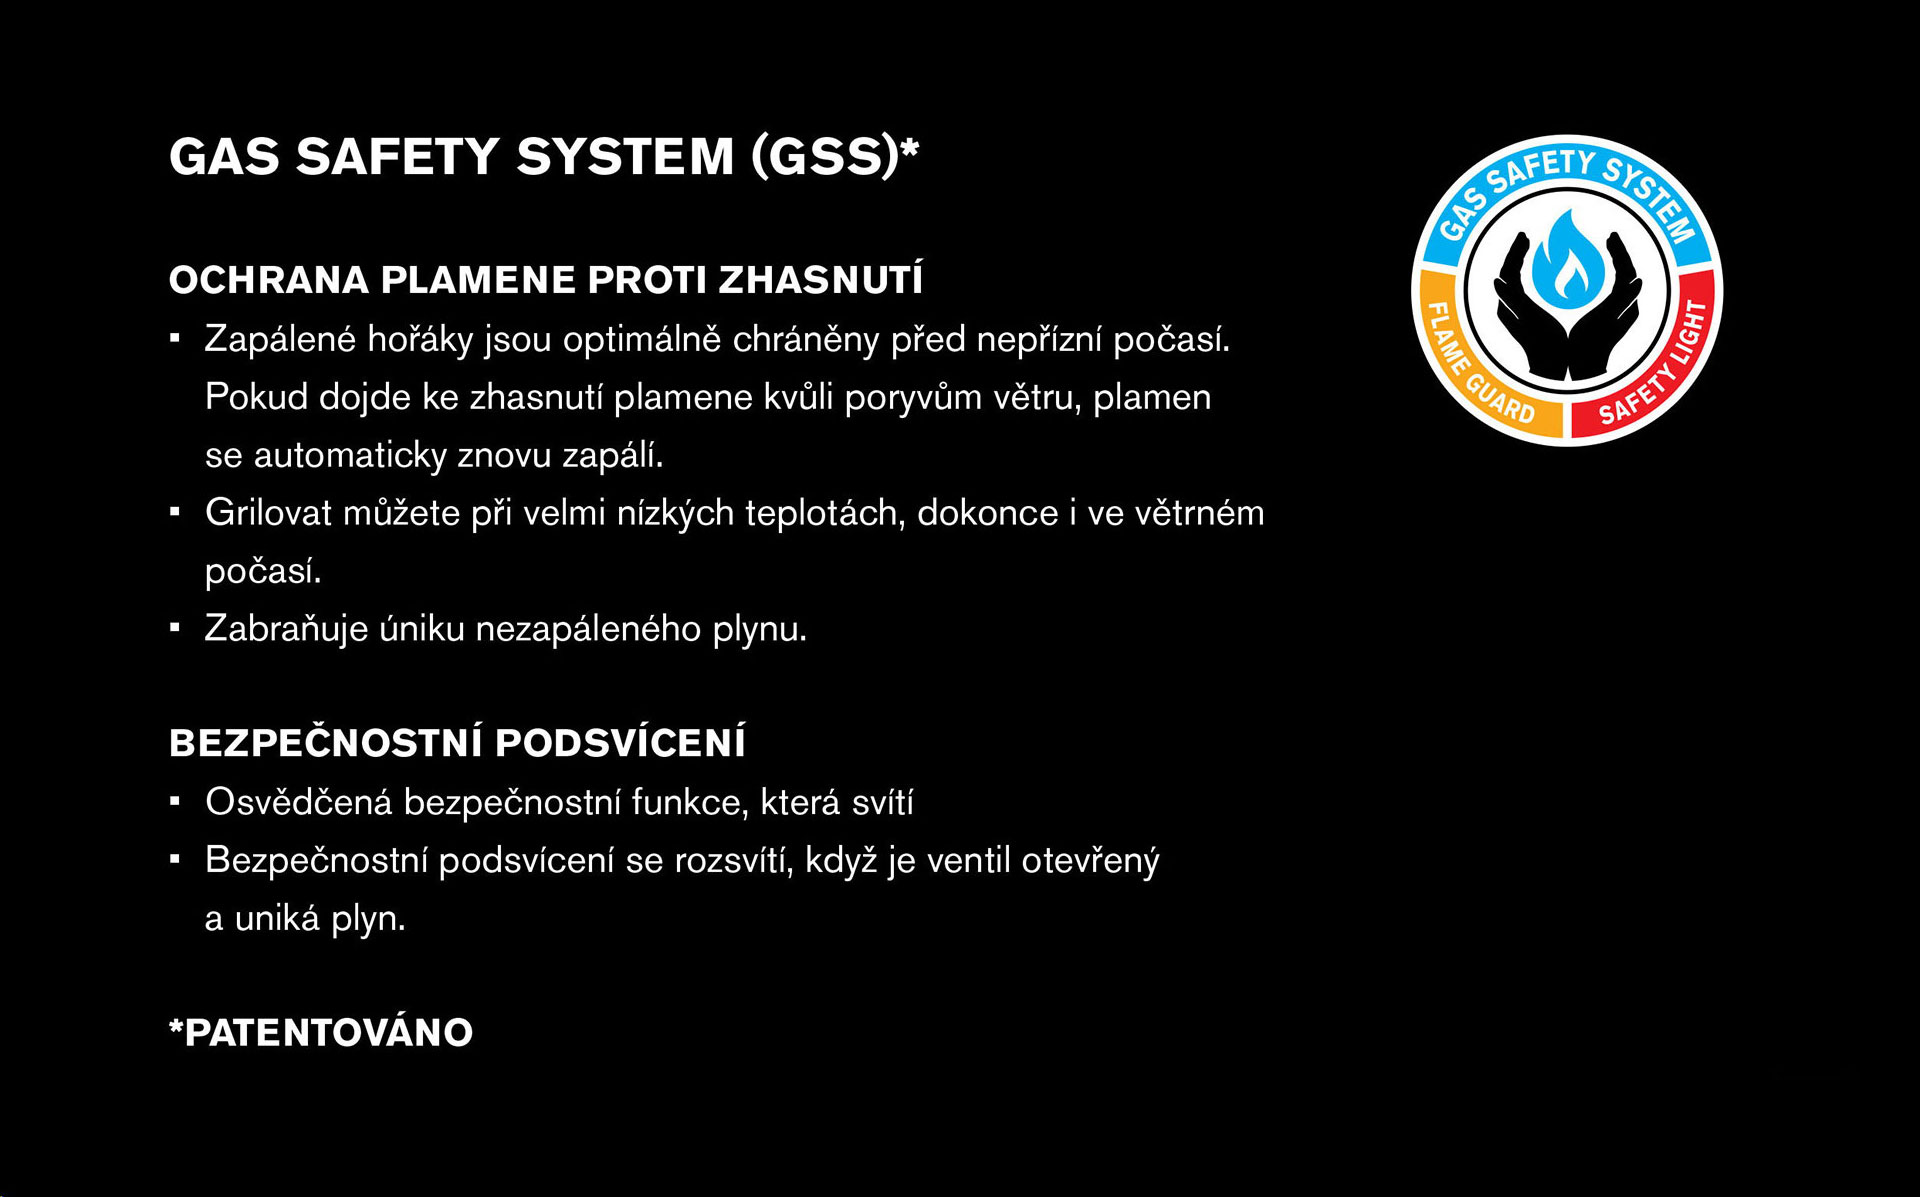 GSS Gas Safety System